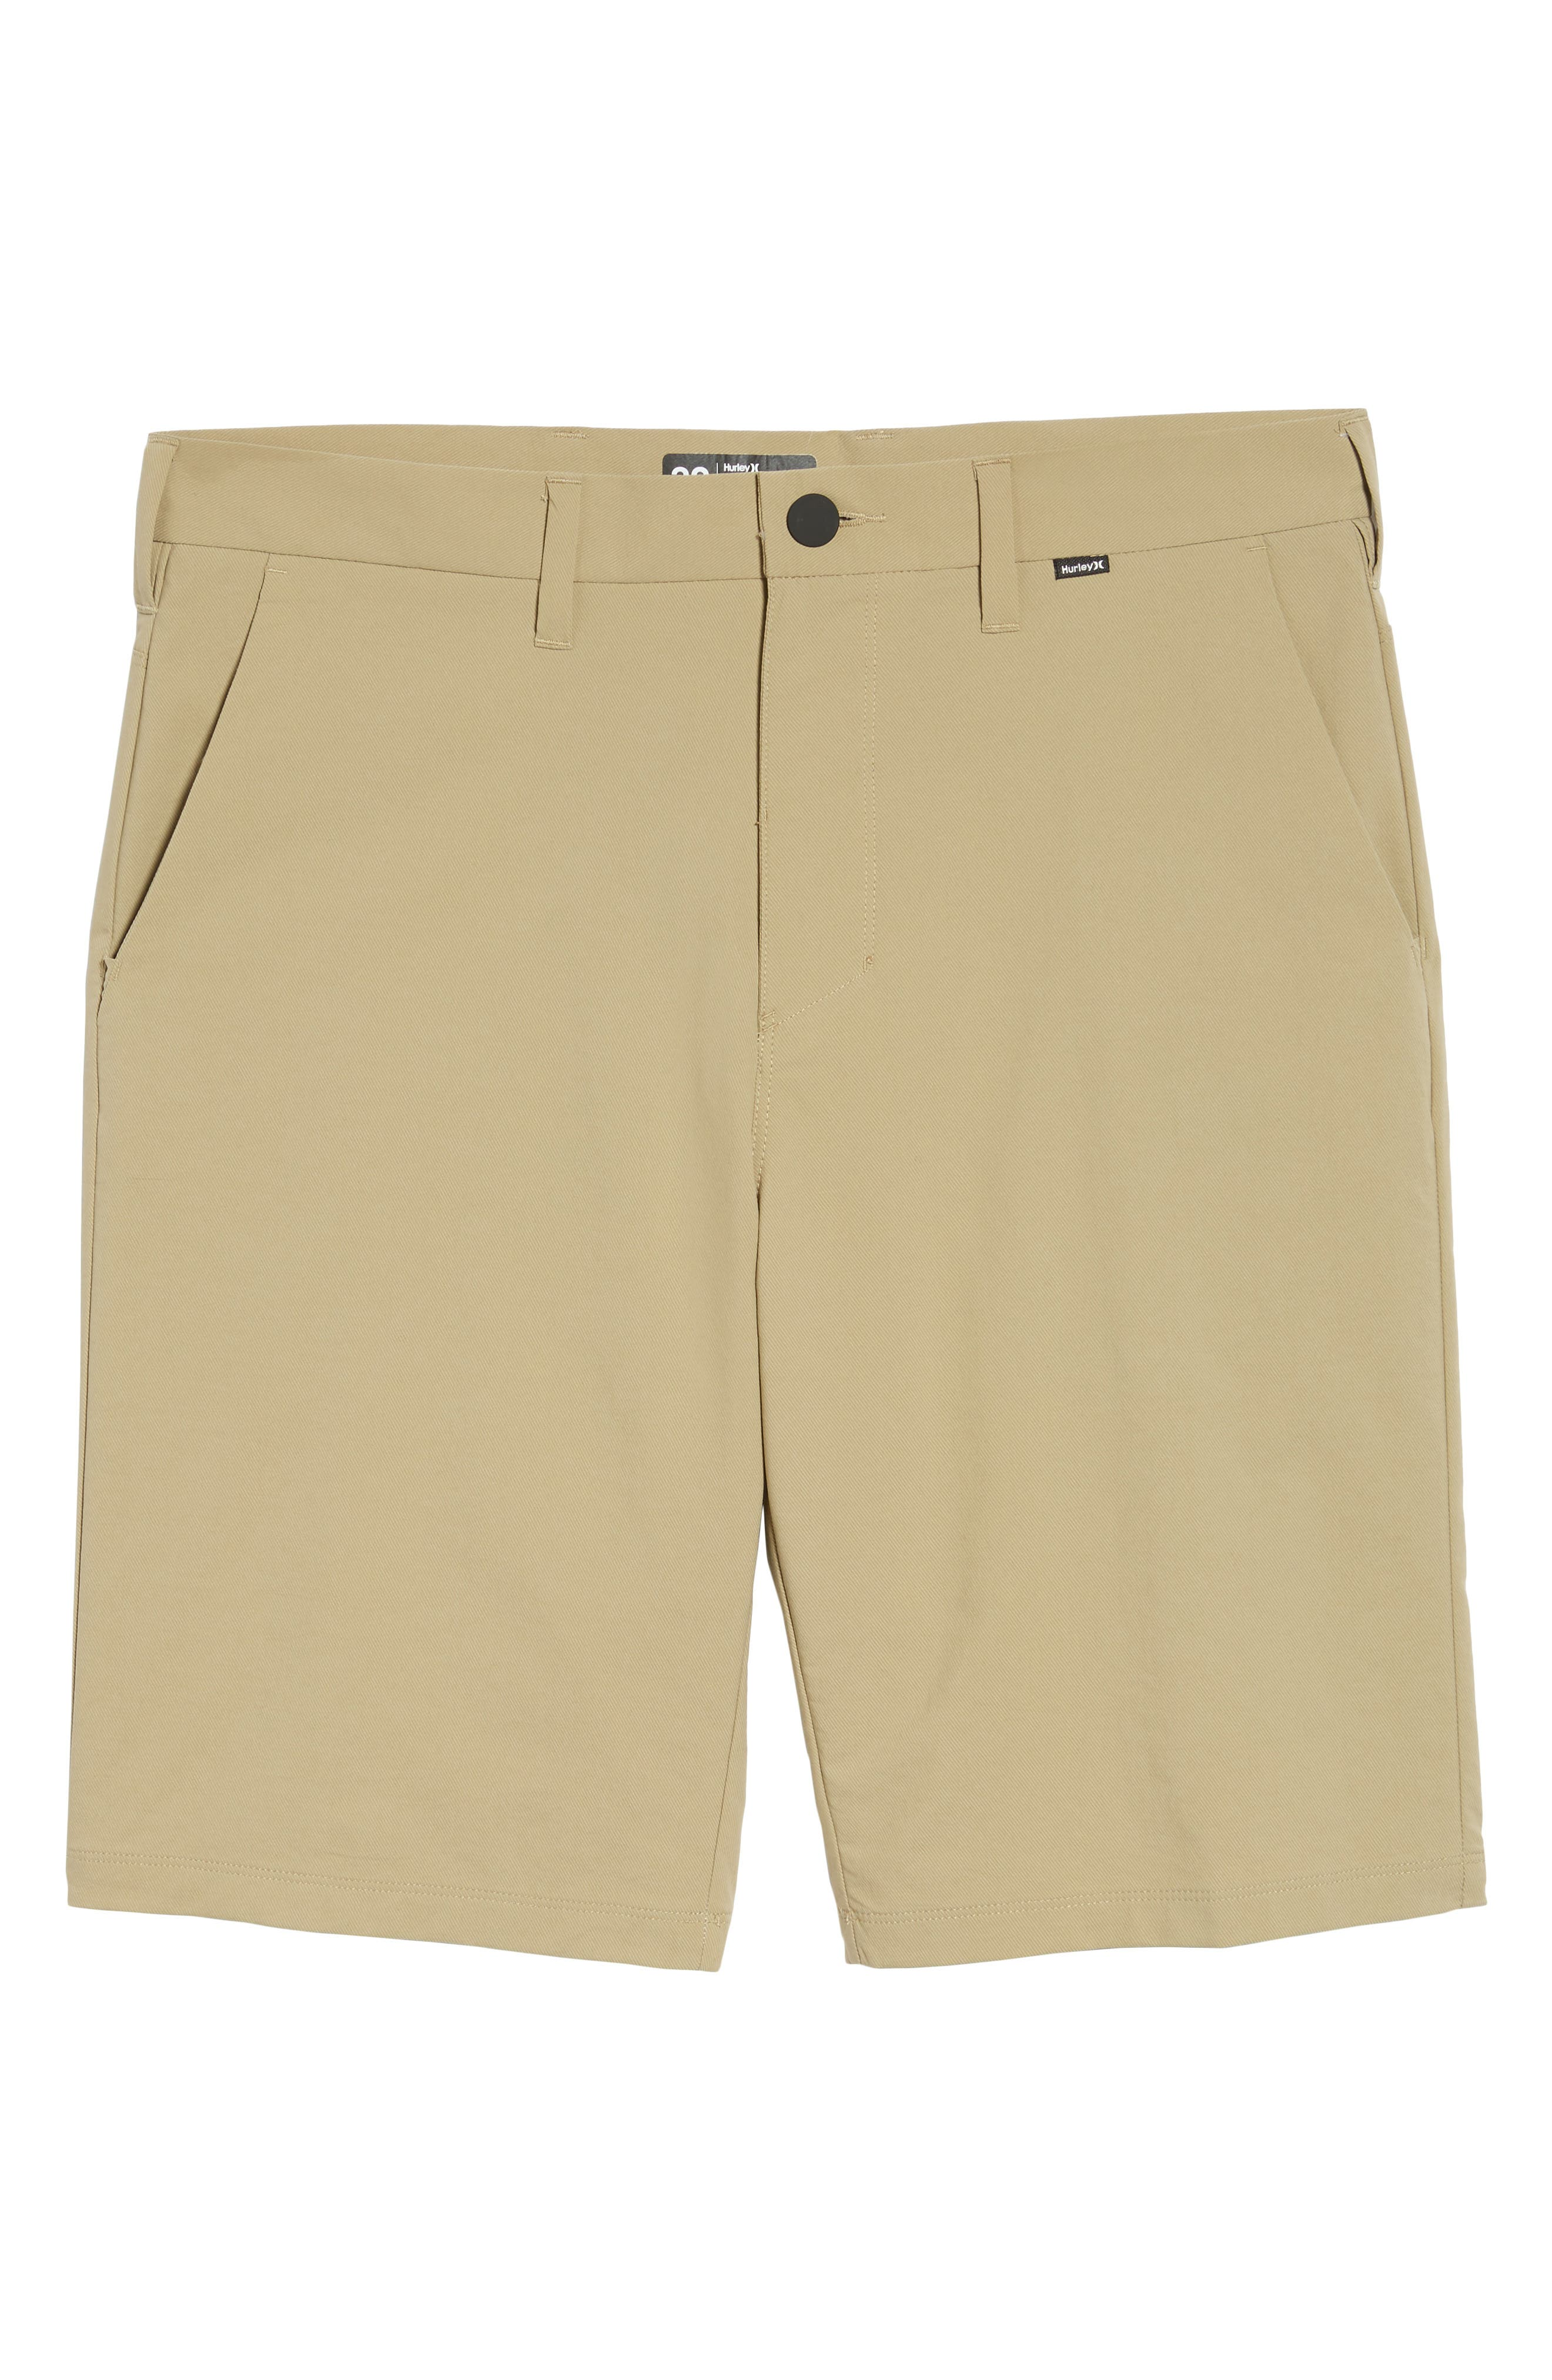 'Dry Out' Dri-FIT<sup>™</sup> Chino Shorts,                             Alternate thumbnail 215, color,